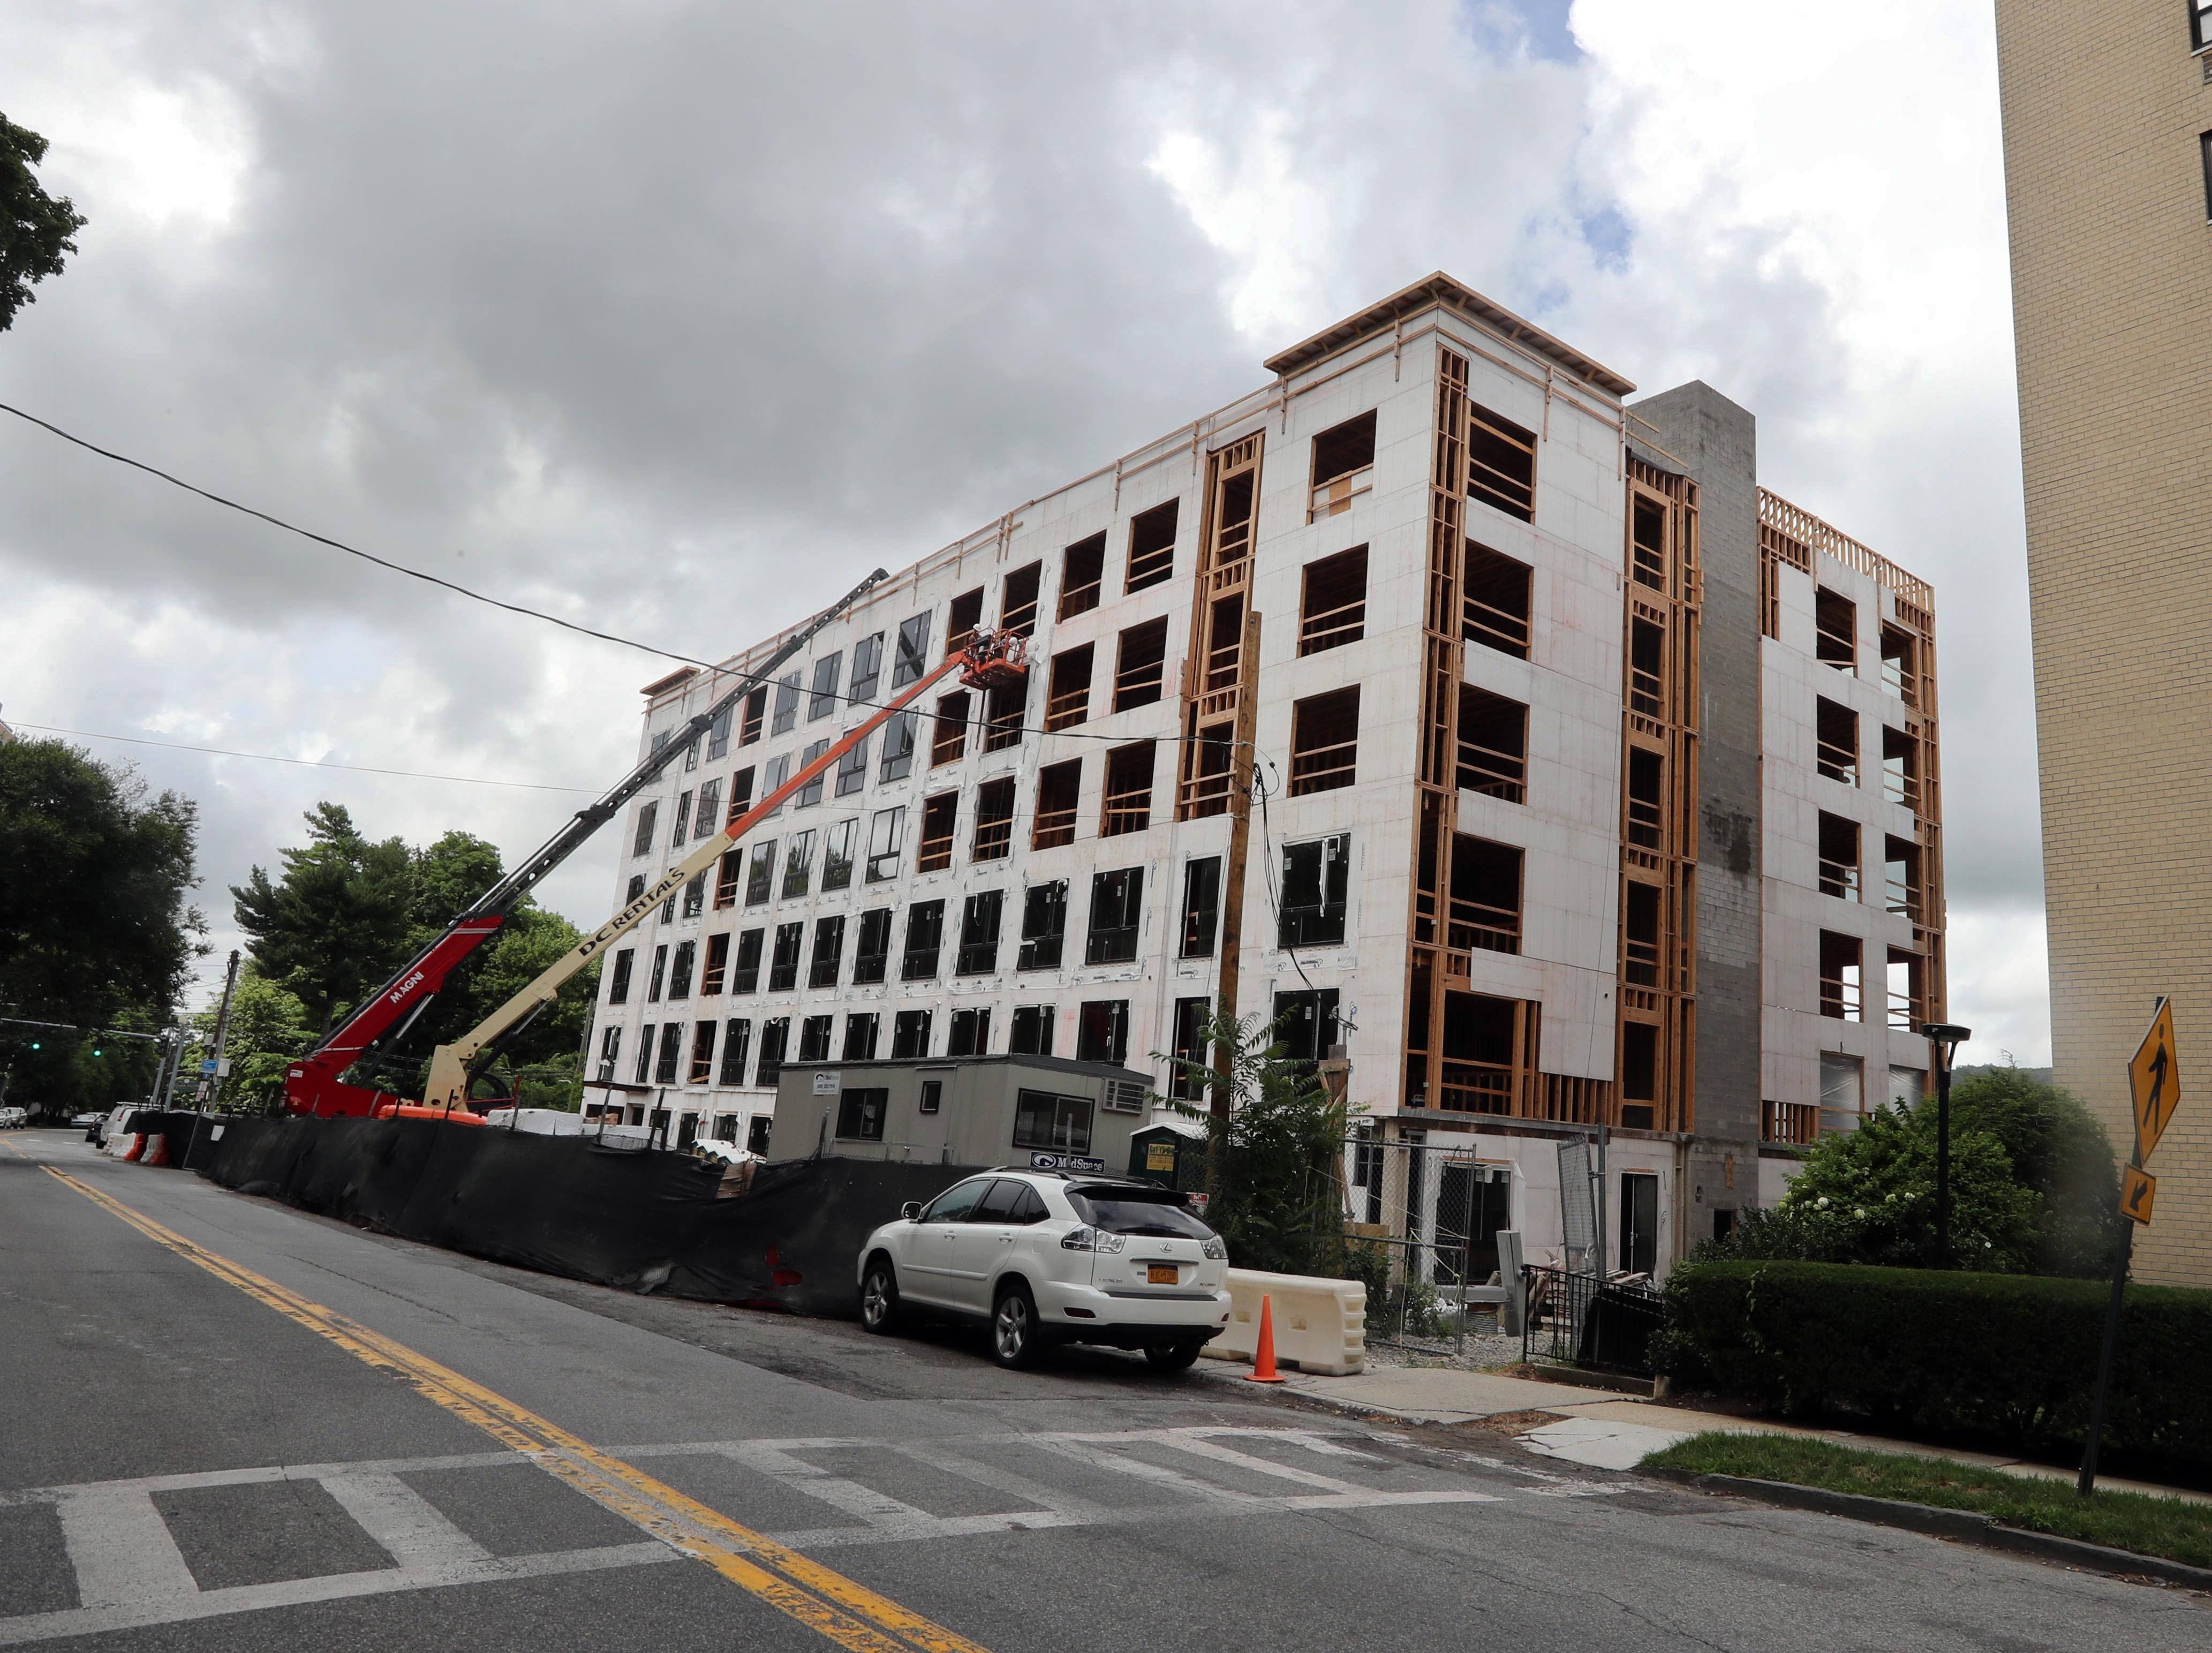 A new apartment building being constructed at 1073 Warburton Ave. in Yonkers, photographed July 24, 2018.